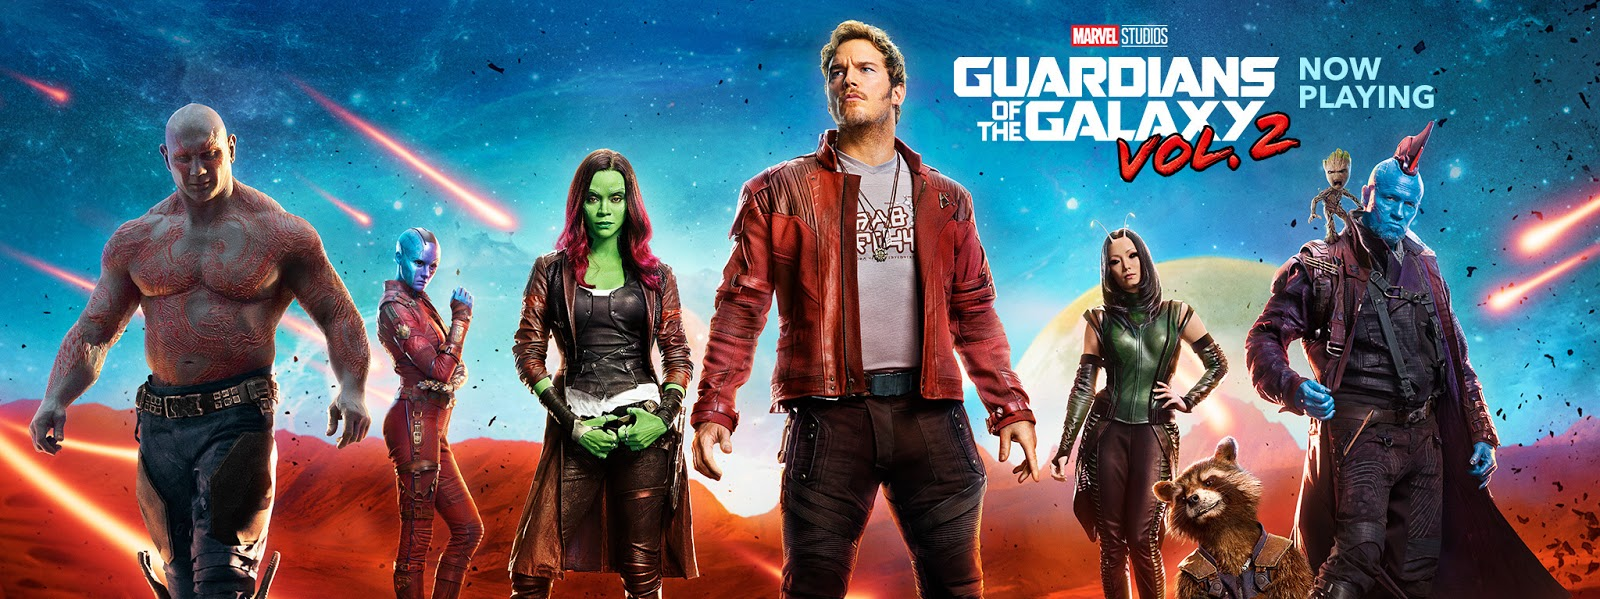 Guardians Of The Galaxy Music Vol 2 23